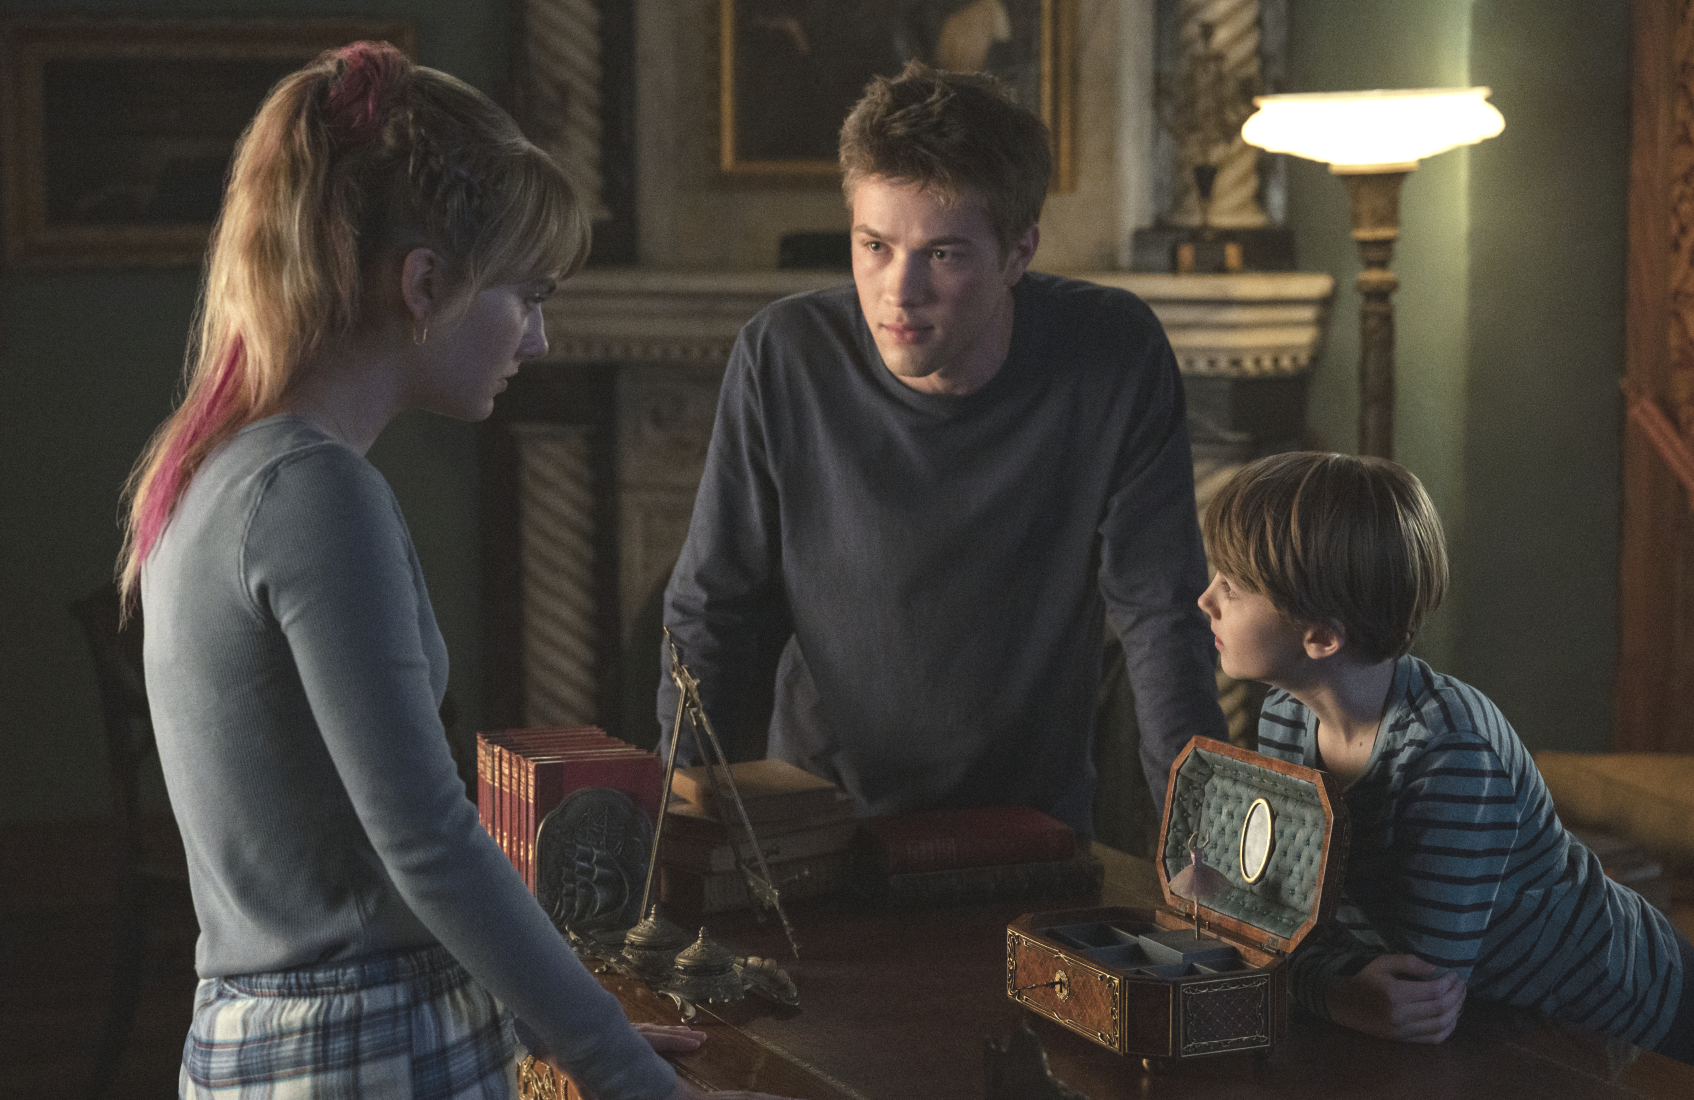 Emilia Jones, Connor Jessup and Jackson Robert Scott in an image from Locke & Key. (Photo: Christos Kalohoridis/Netflix)